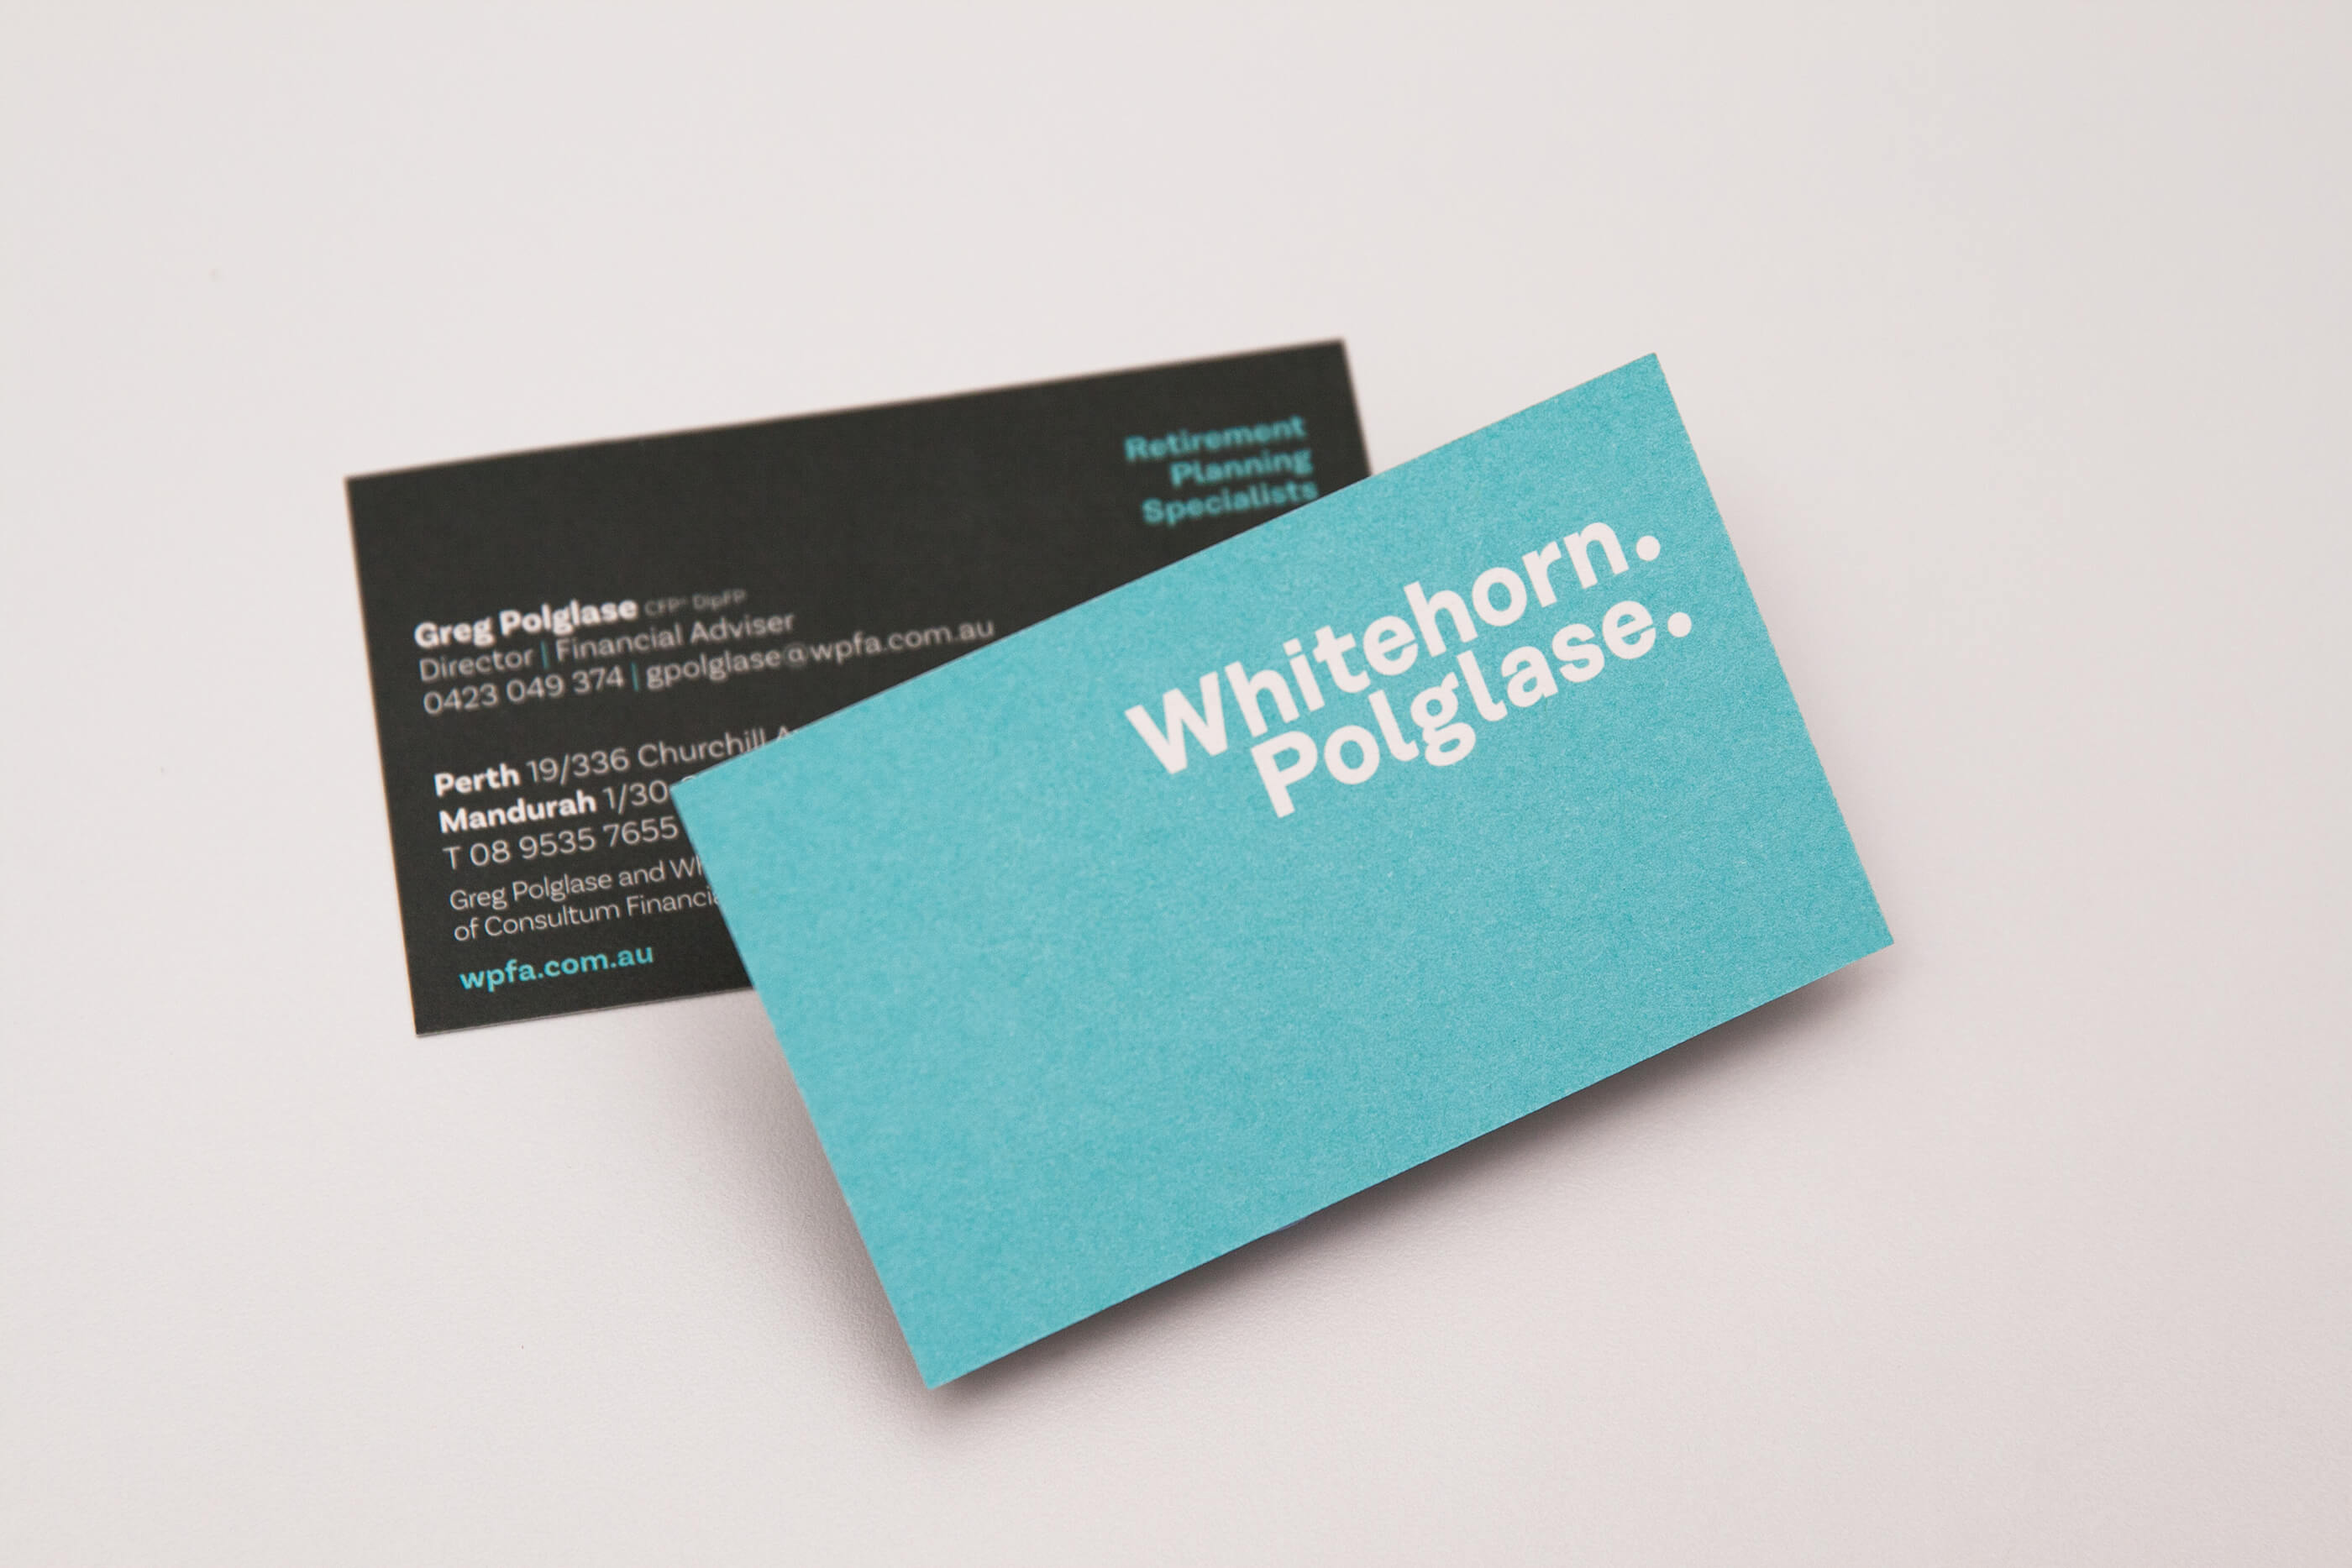 whitehorn_polglase_business_cards_1